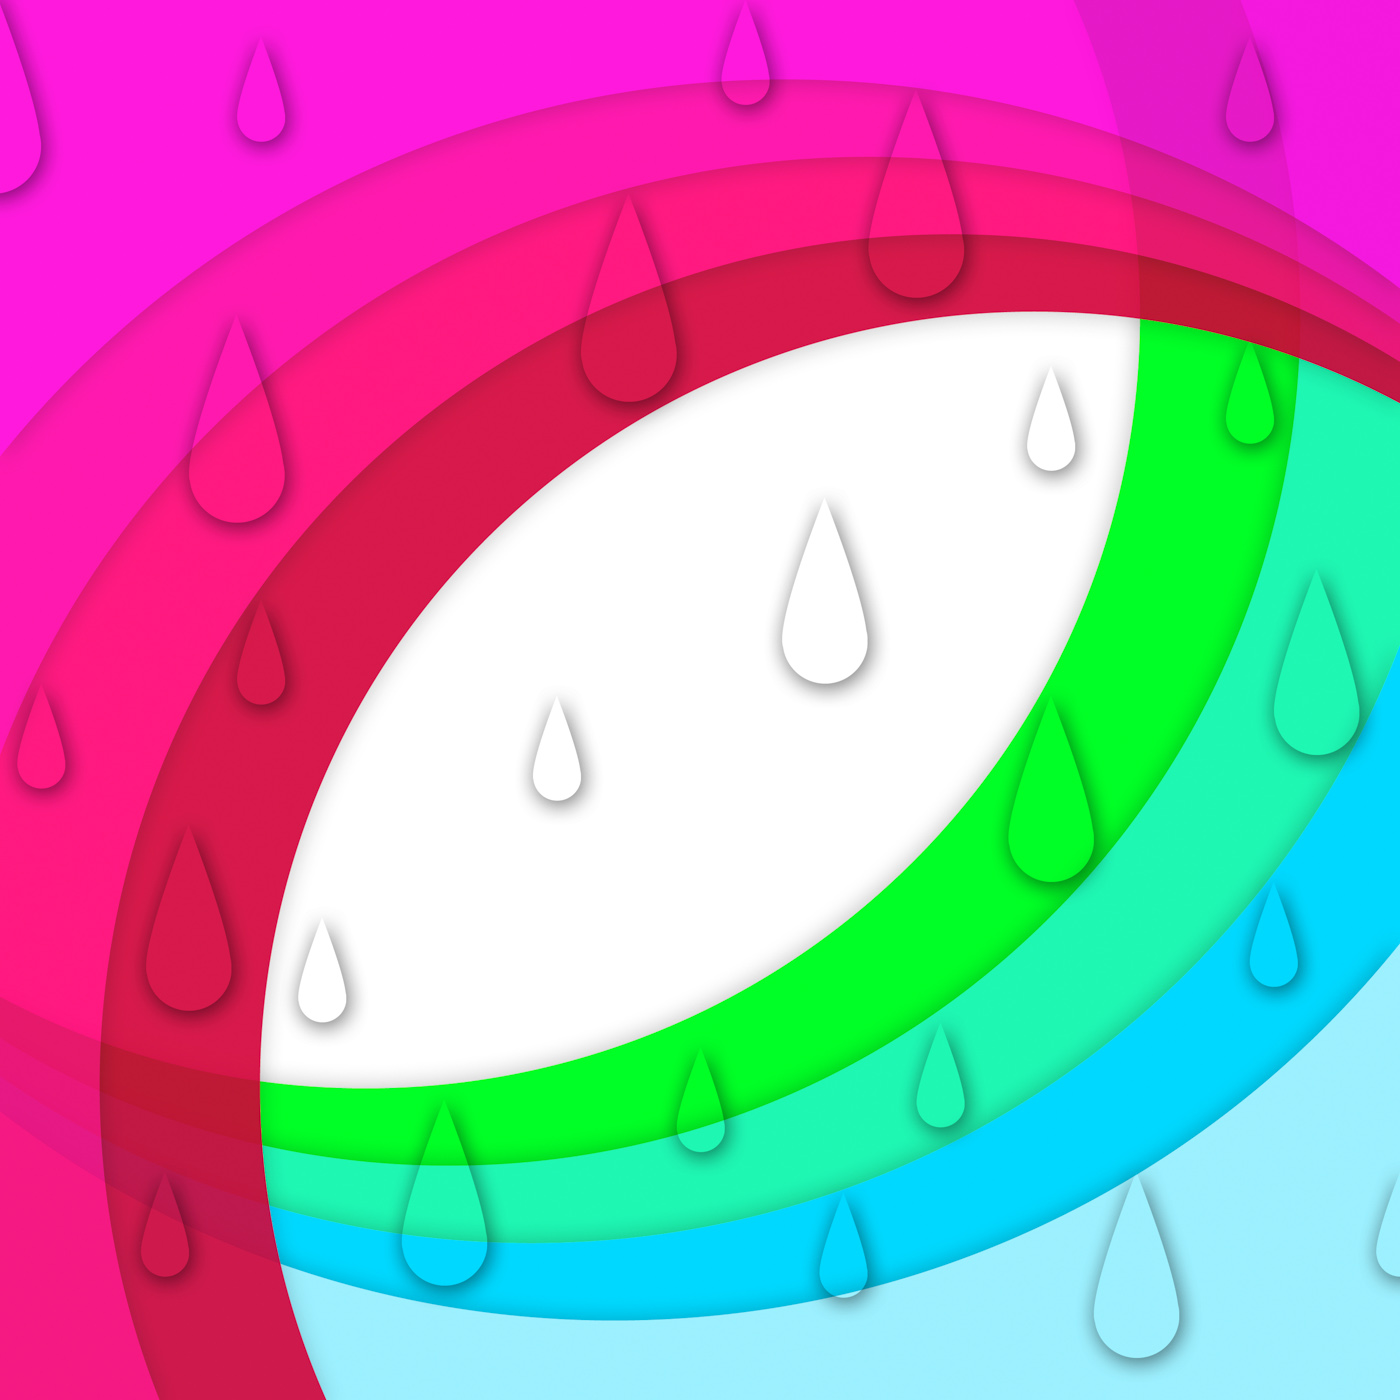 Colorful Curves Background Shows Sloping Lines And Water Drops, Colorful, Colors, Curves, Curvy, HQ Photo